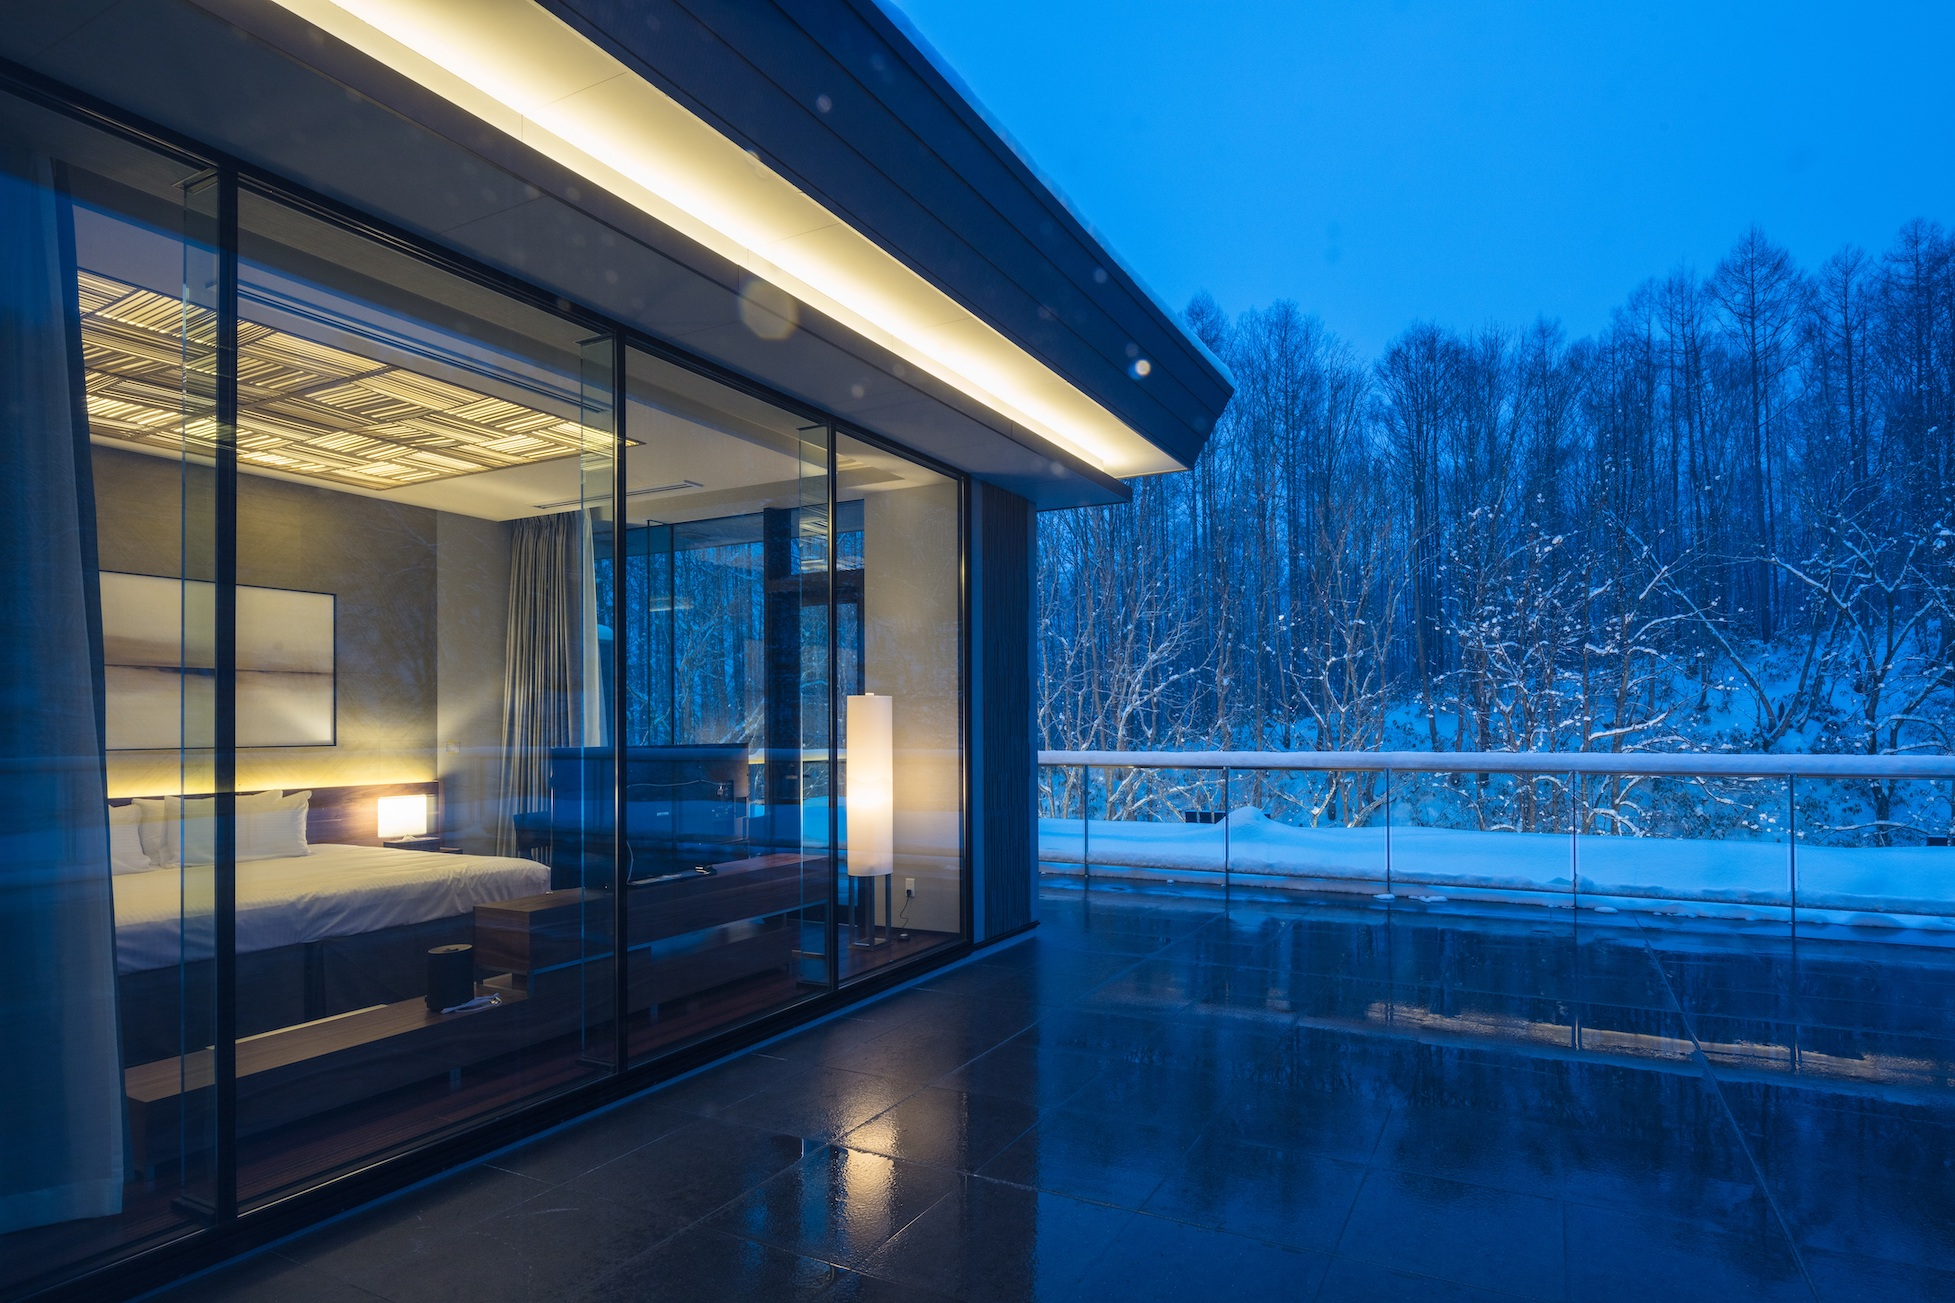 aya-niseko-penthouse-c-winter-9